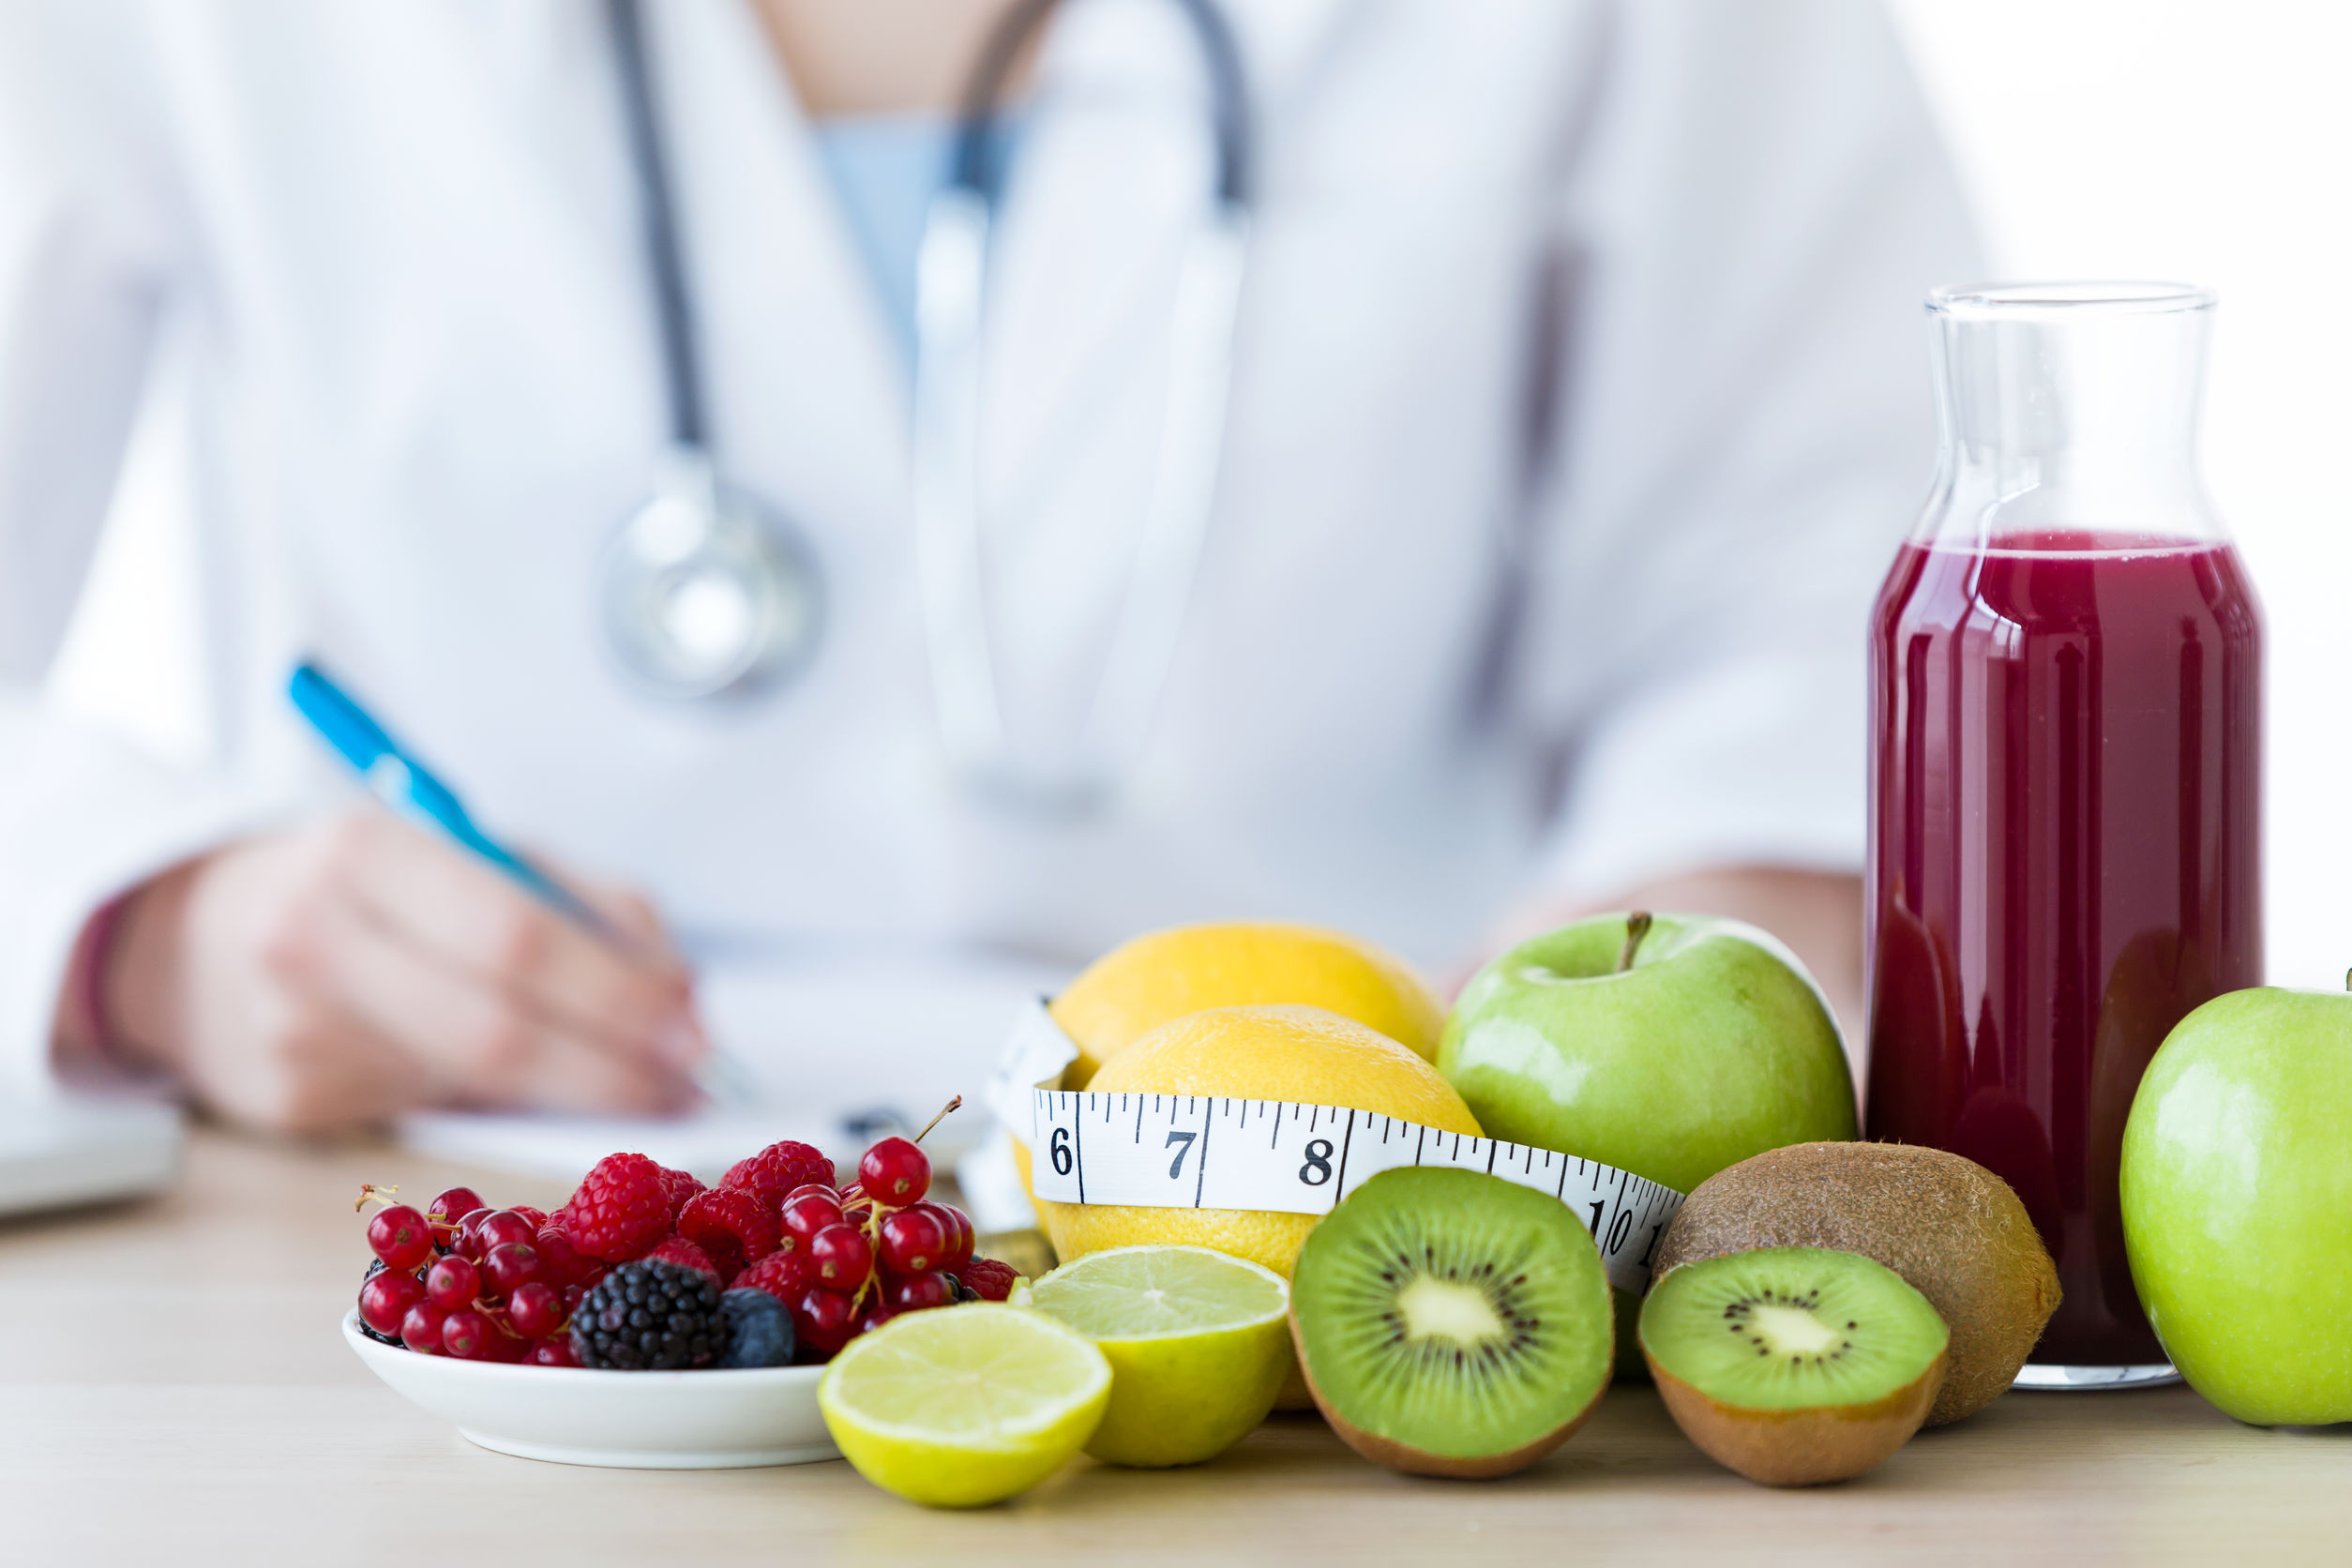 Close-up of some fruits such as apples, kiwis, lemons and berries on nutritionist table.